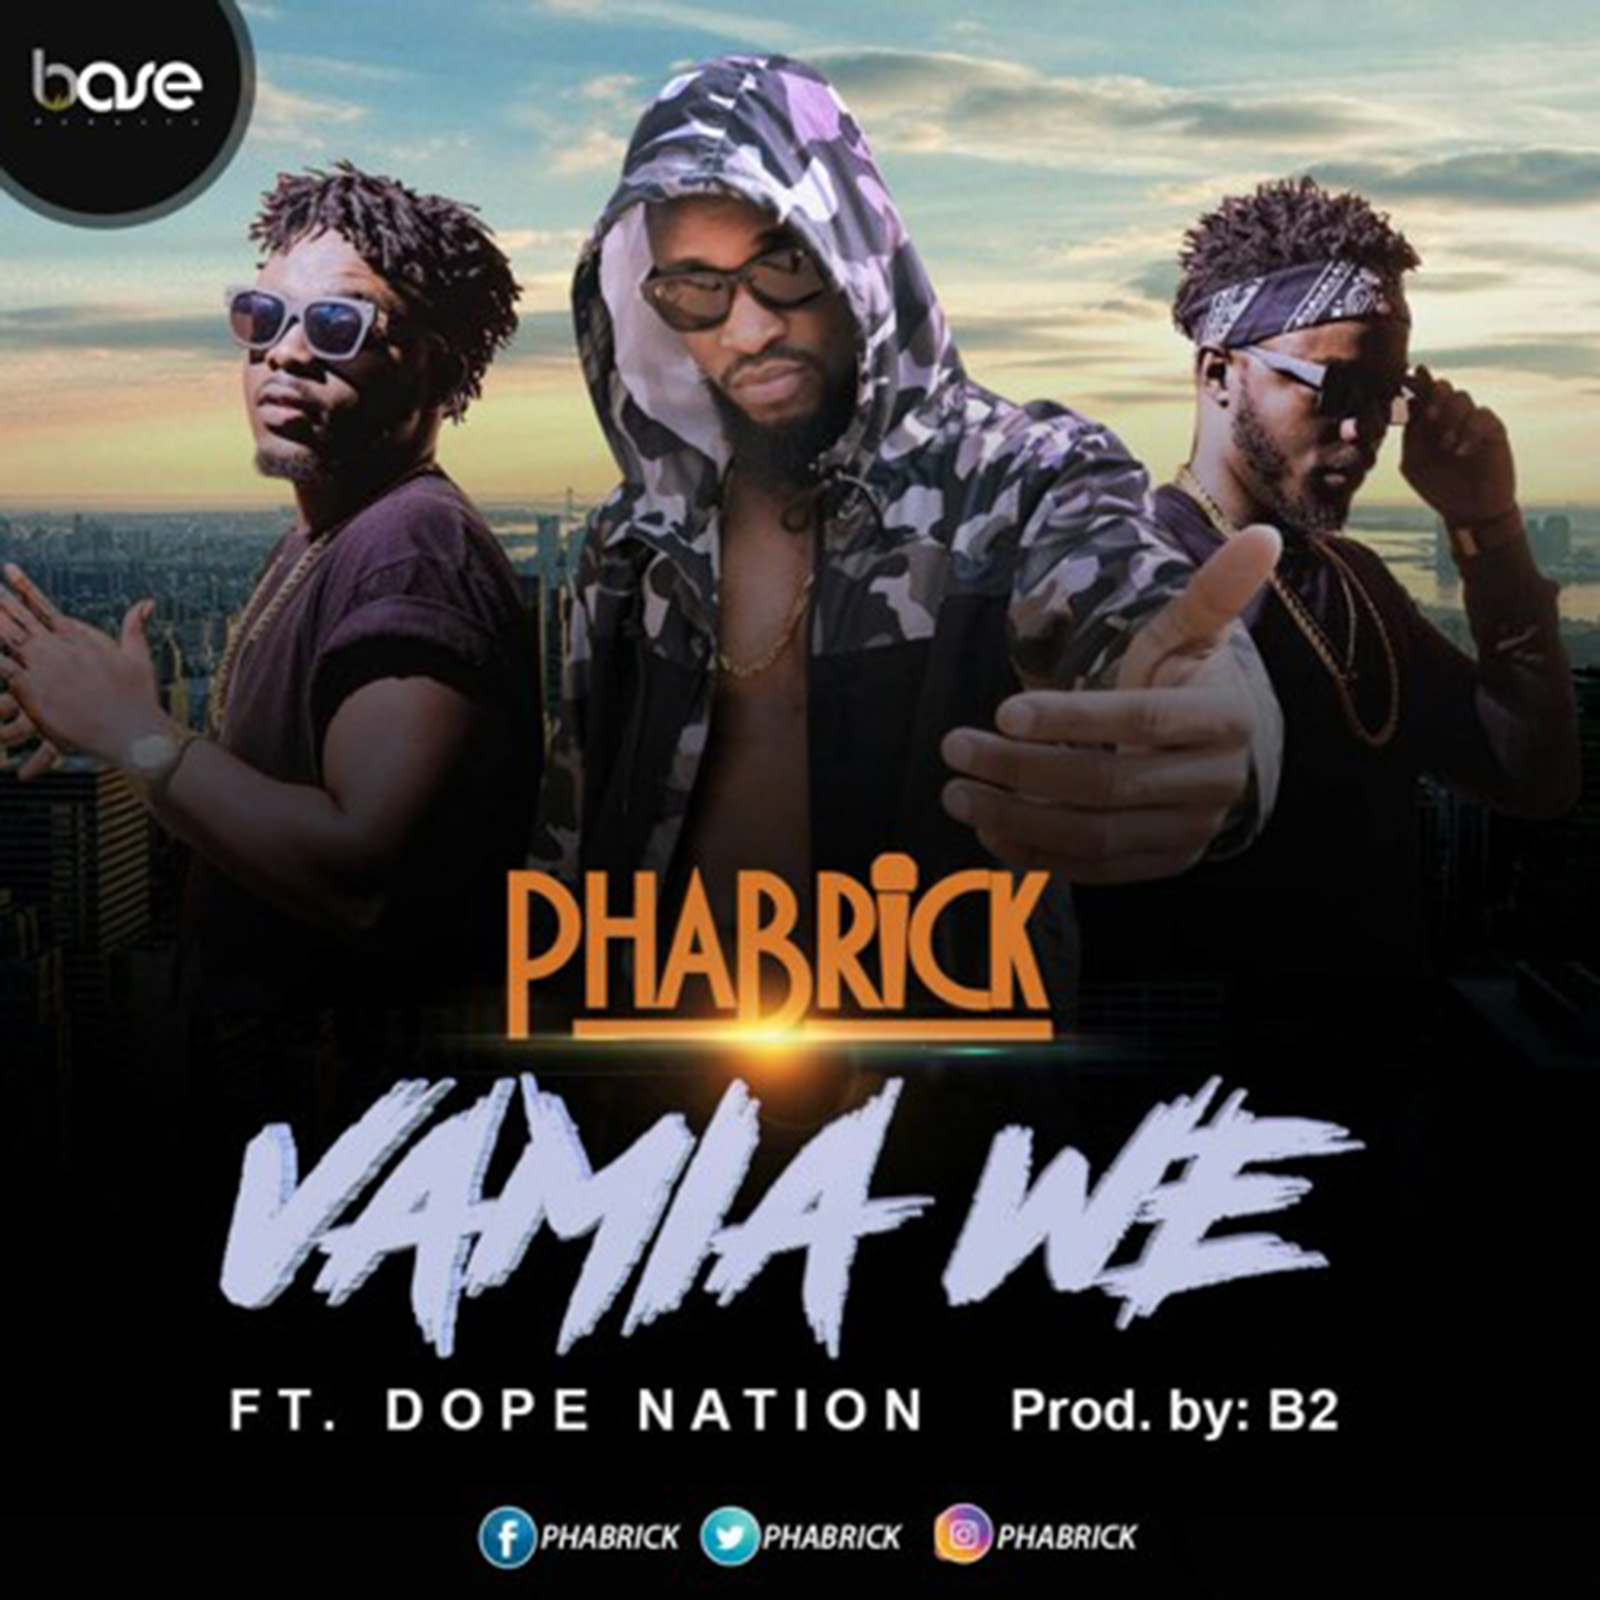 VaMia We by Phabrick feat. DopeNation